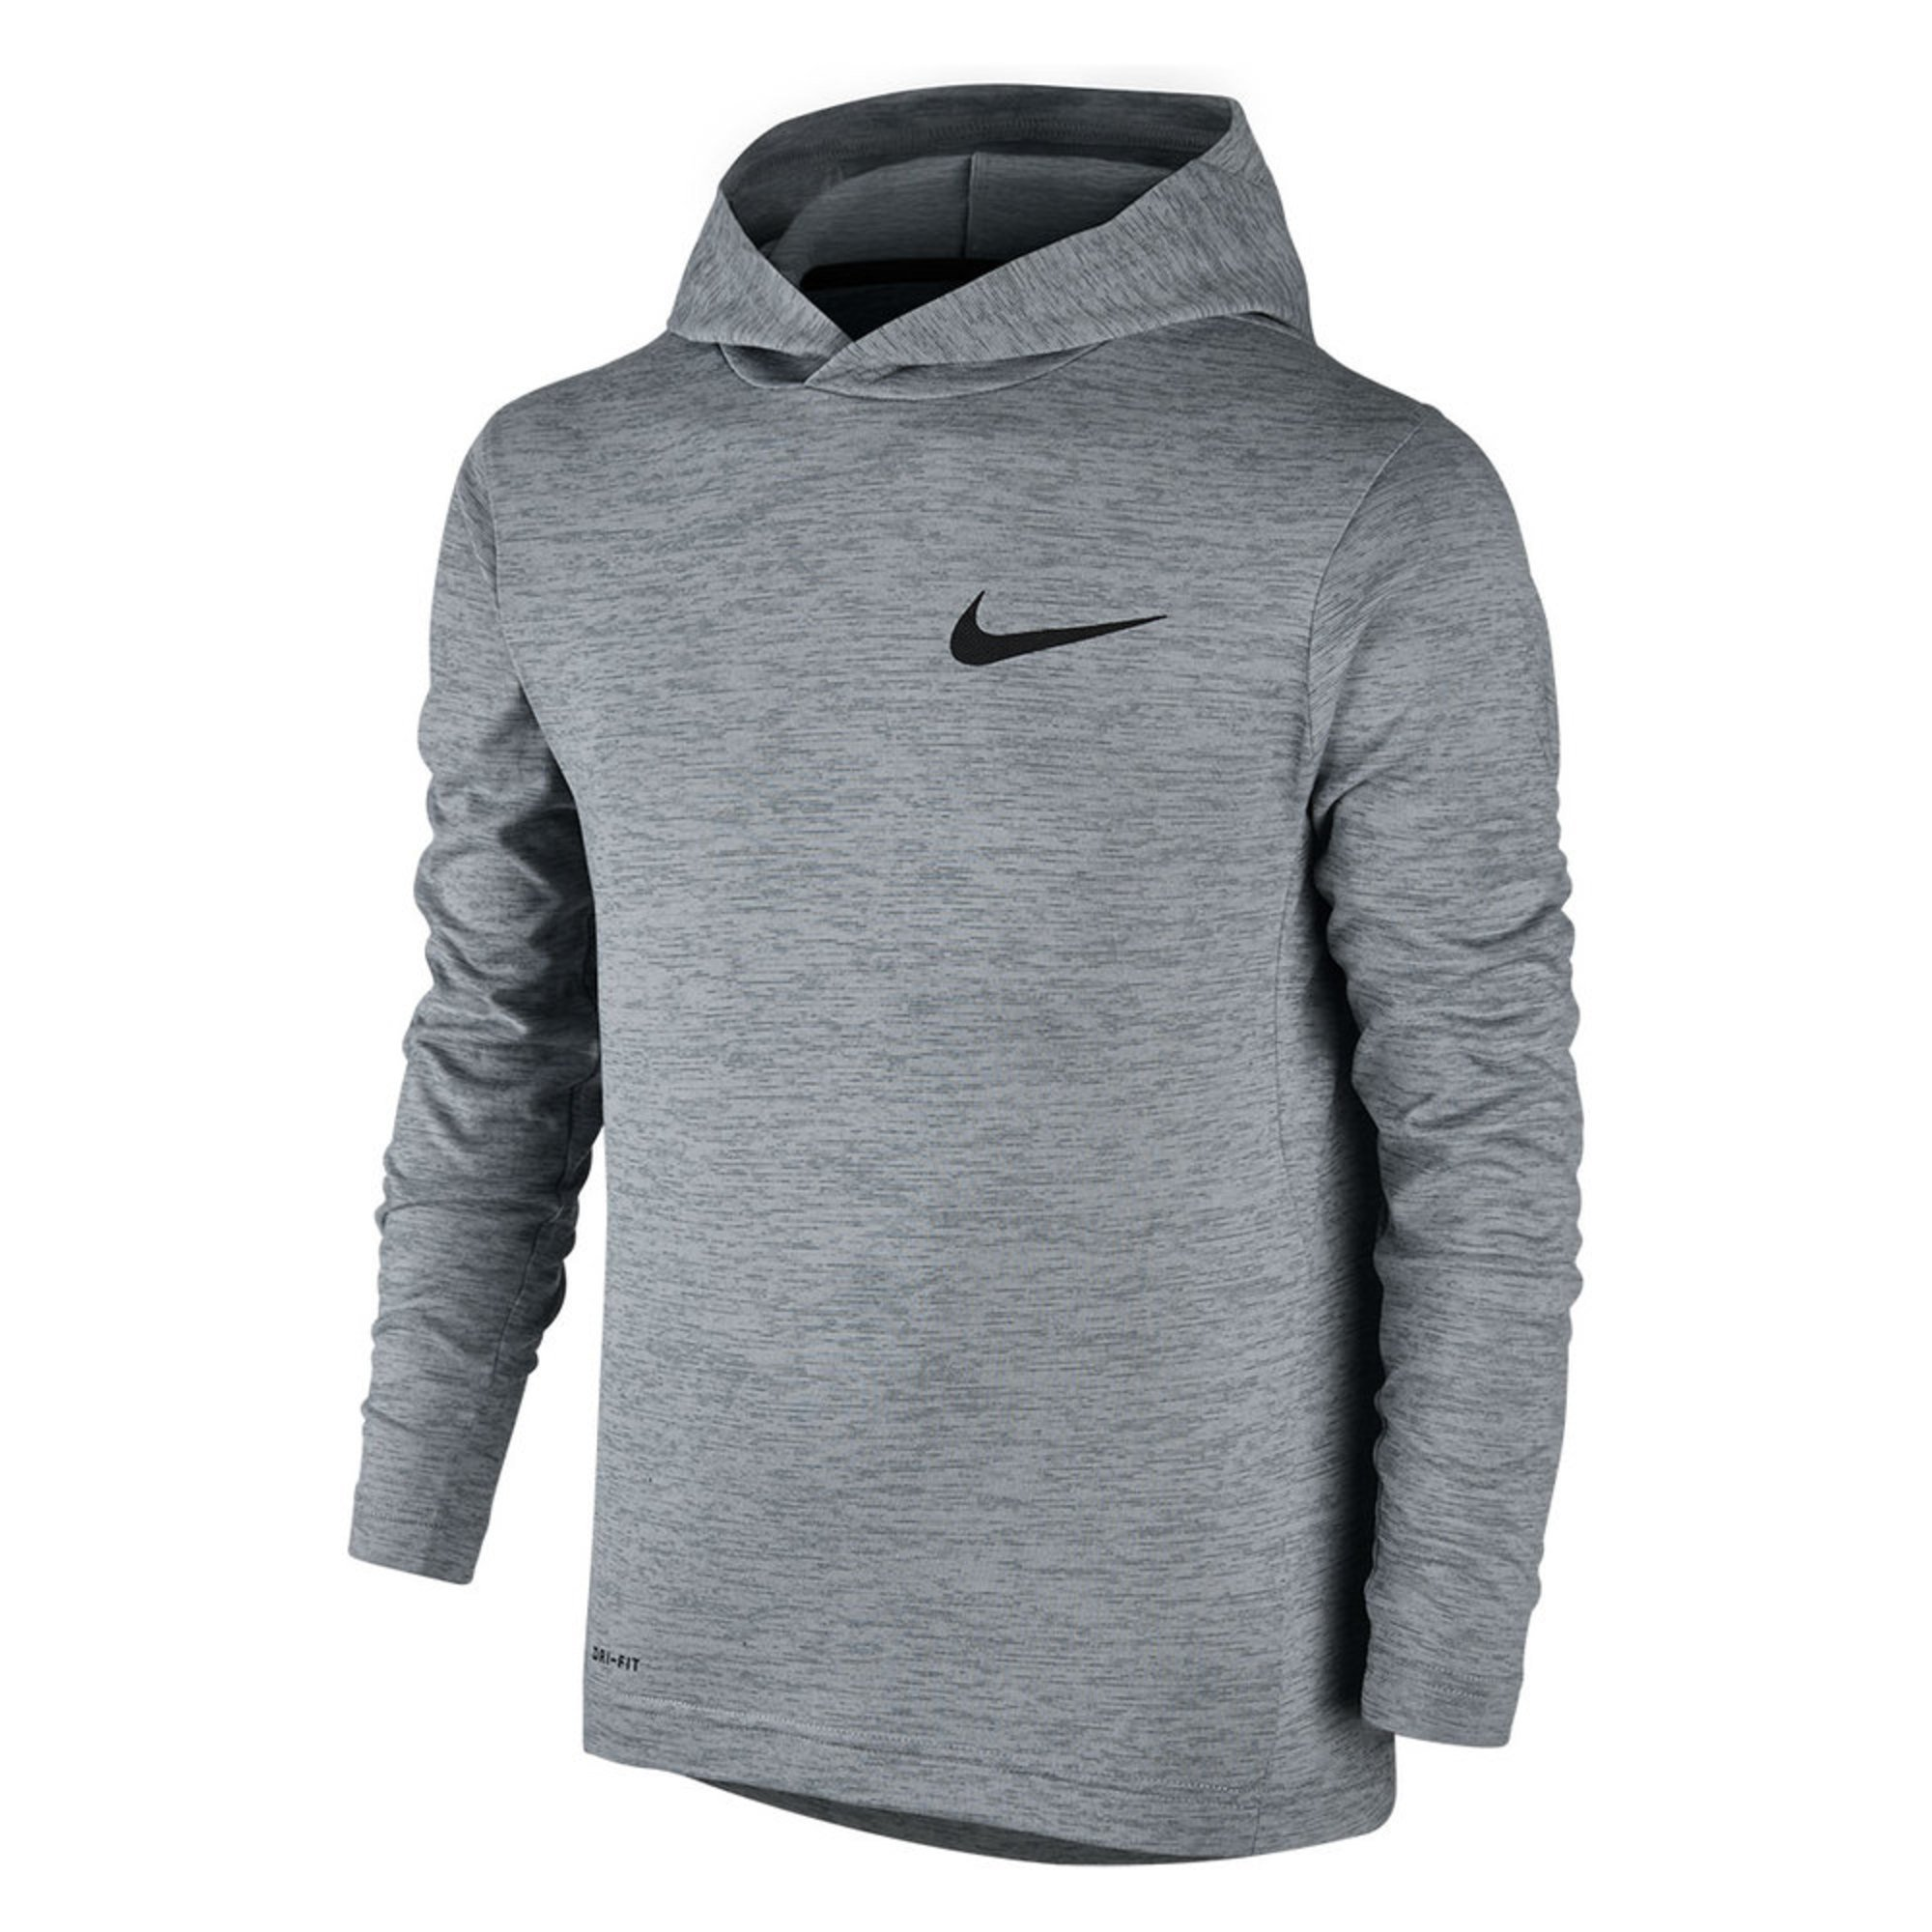 Nike Big Boys' Dri-fit Training Hoodie, Grey | Big Boys ...